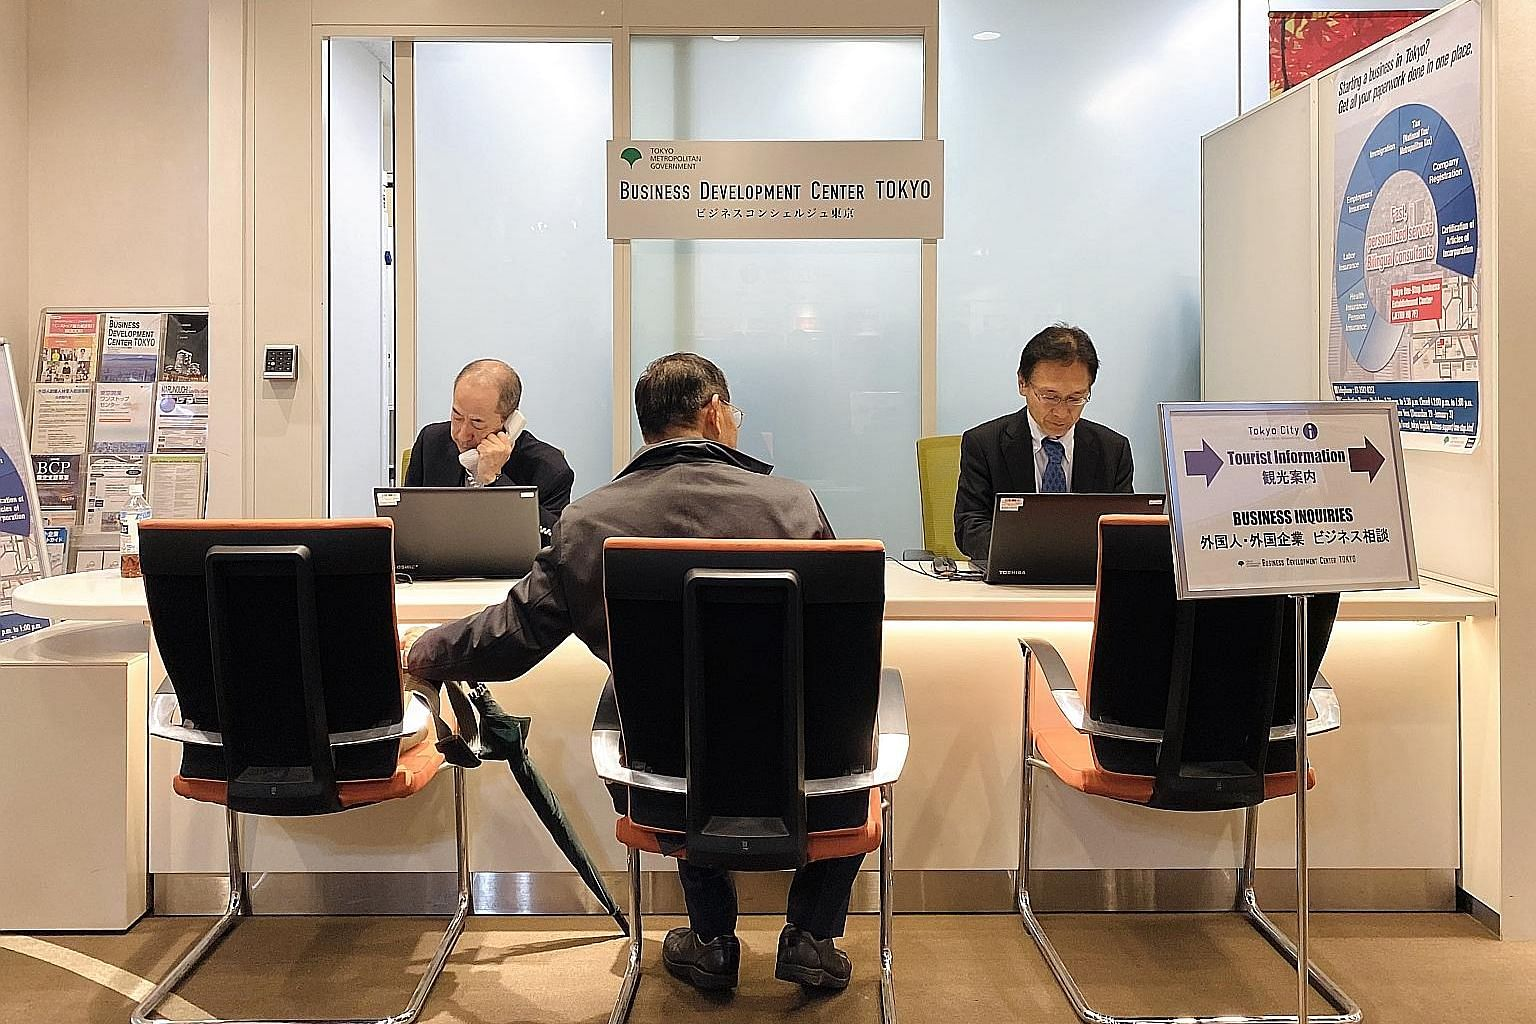 The Business Development Centre Tokyo helps financial and fintech companies that want to enter Tokyo, providing help like advice on available subsidies. Over the past two years or so, the service has helped more than 100 firms. ST PHOTO: SEOW BEI YI